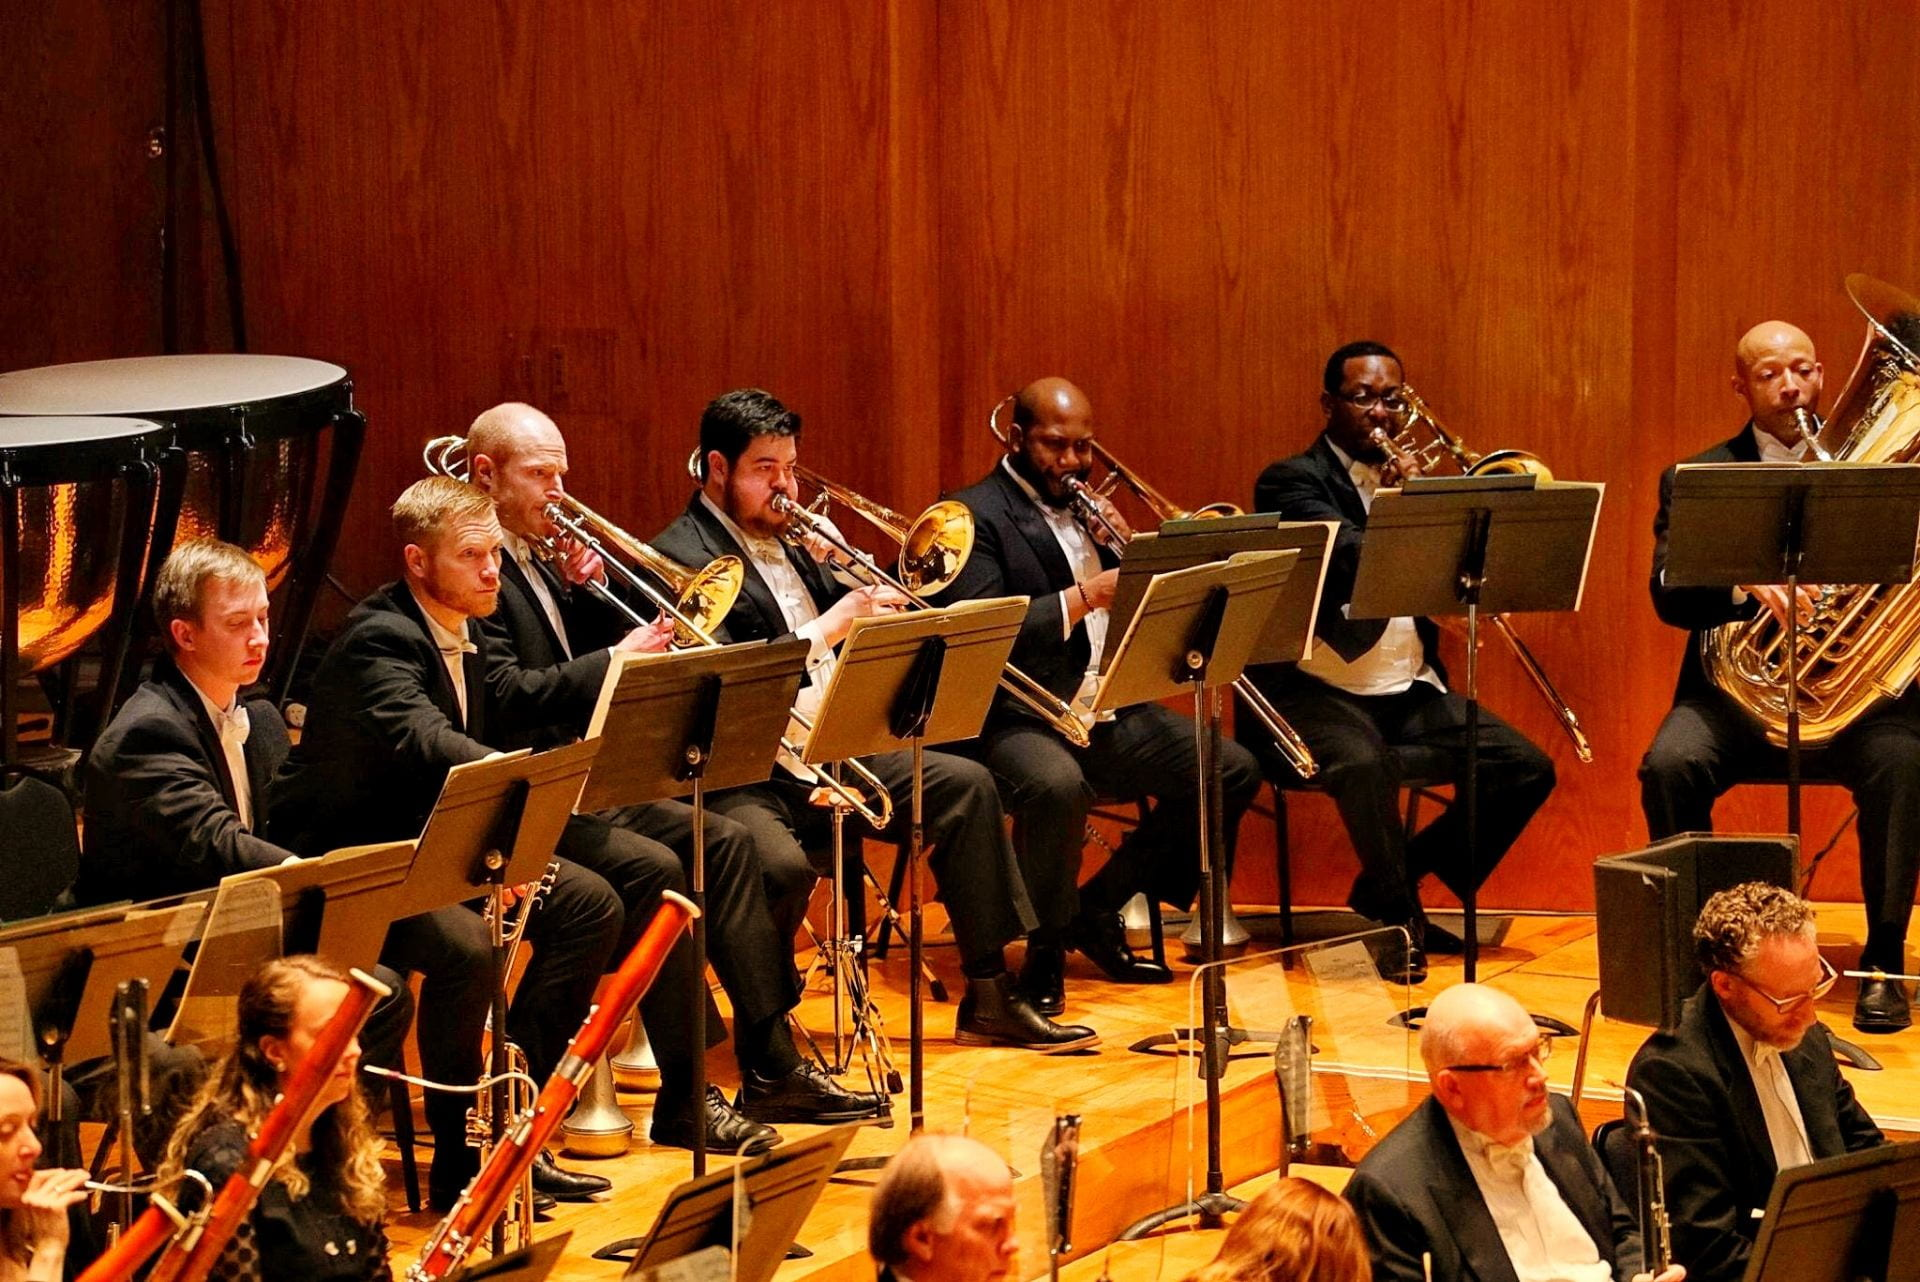 Trombone section of Utah Symphony performing with Dr. Martin McCain on far right.